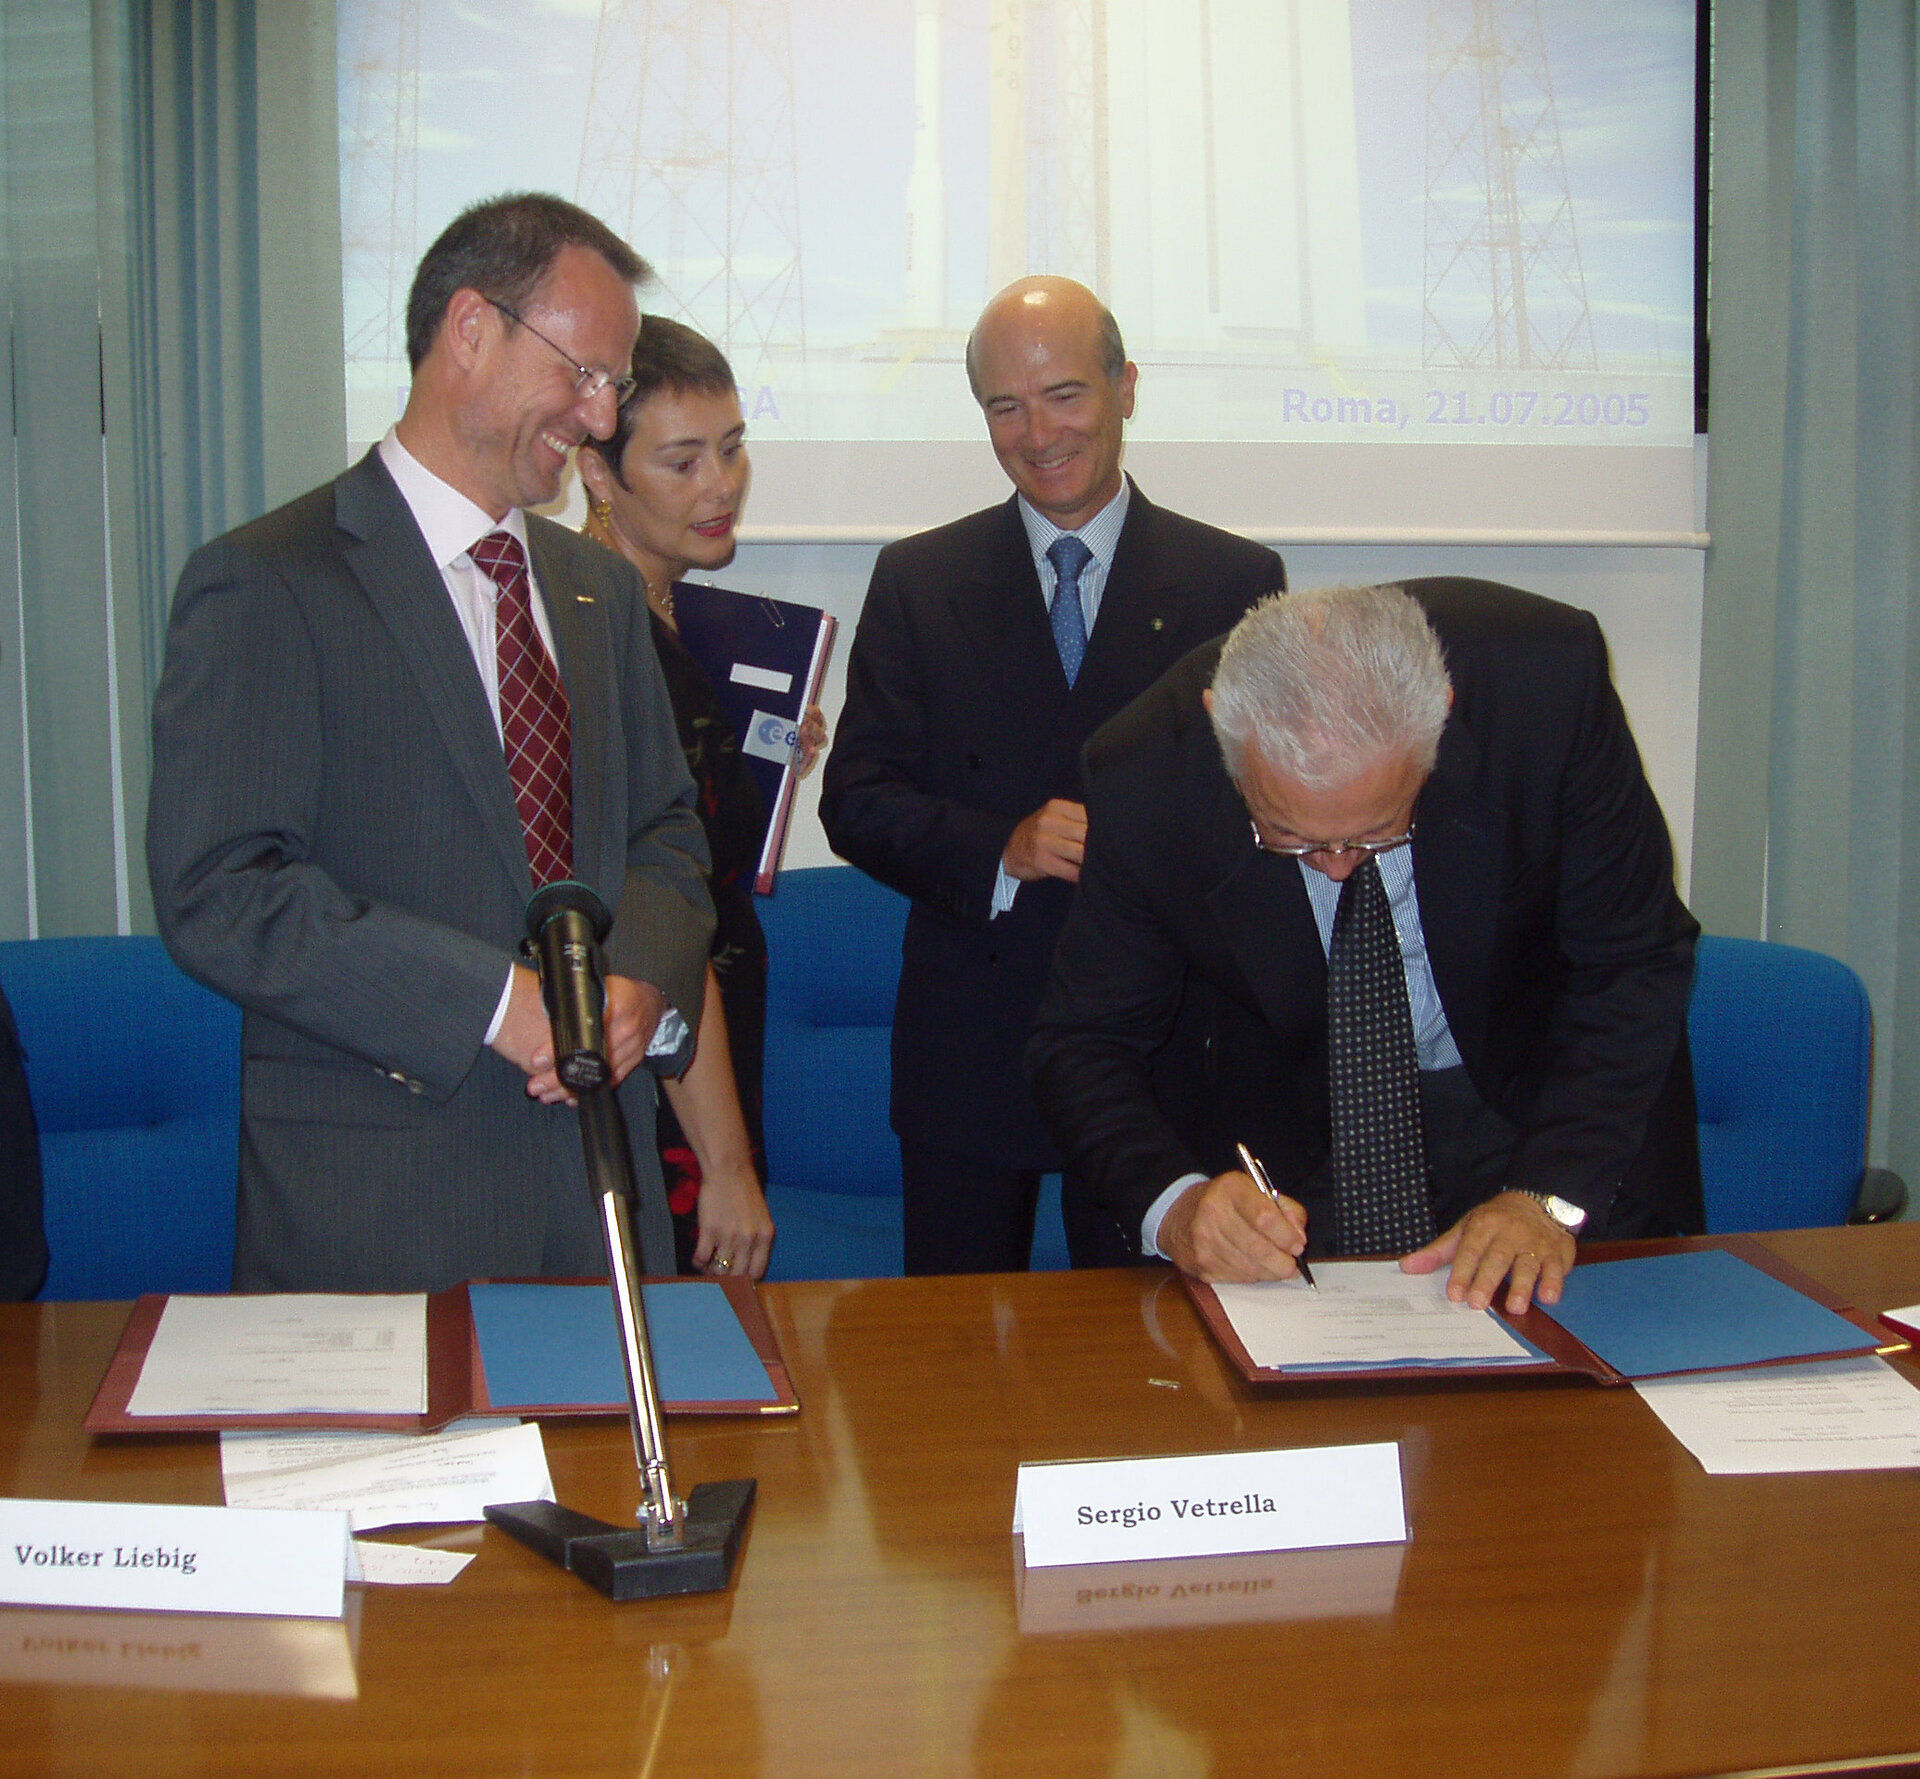 Signing of contract for Vega ground segment